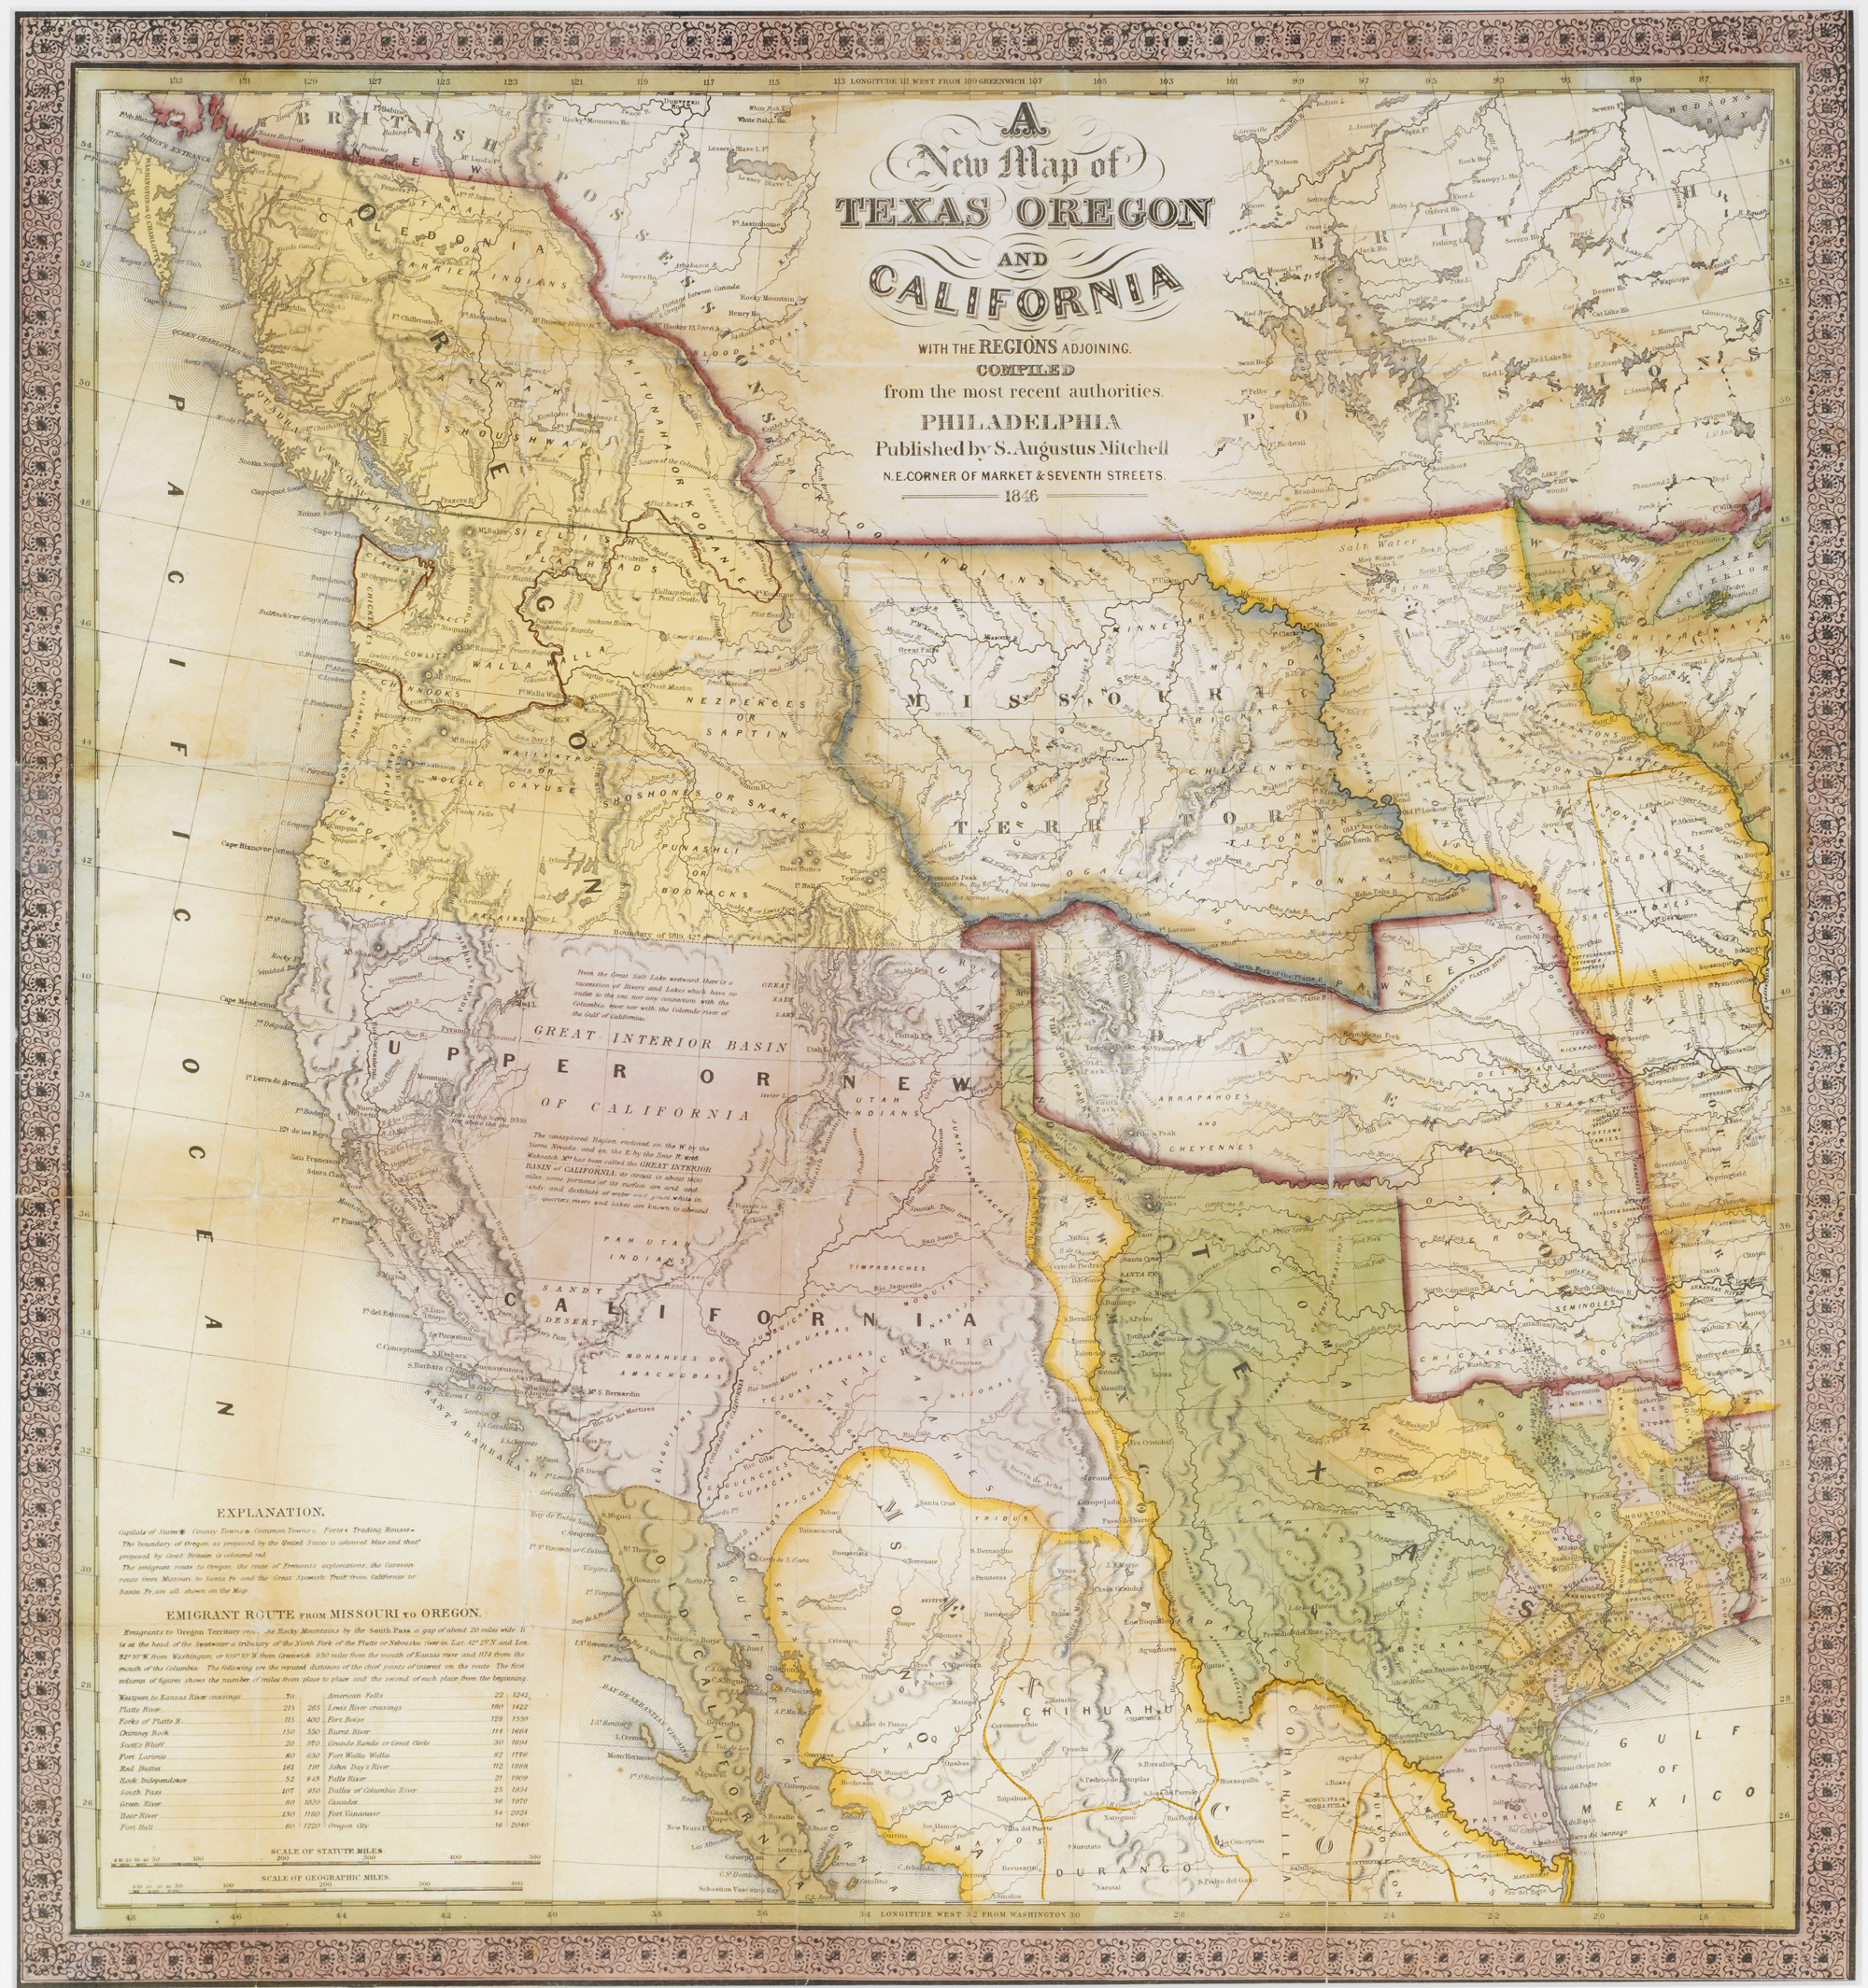 Map Of West Texas And New Mexico.Maps A New Map Of Texas Oregon And California A Continent Divided